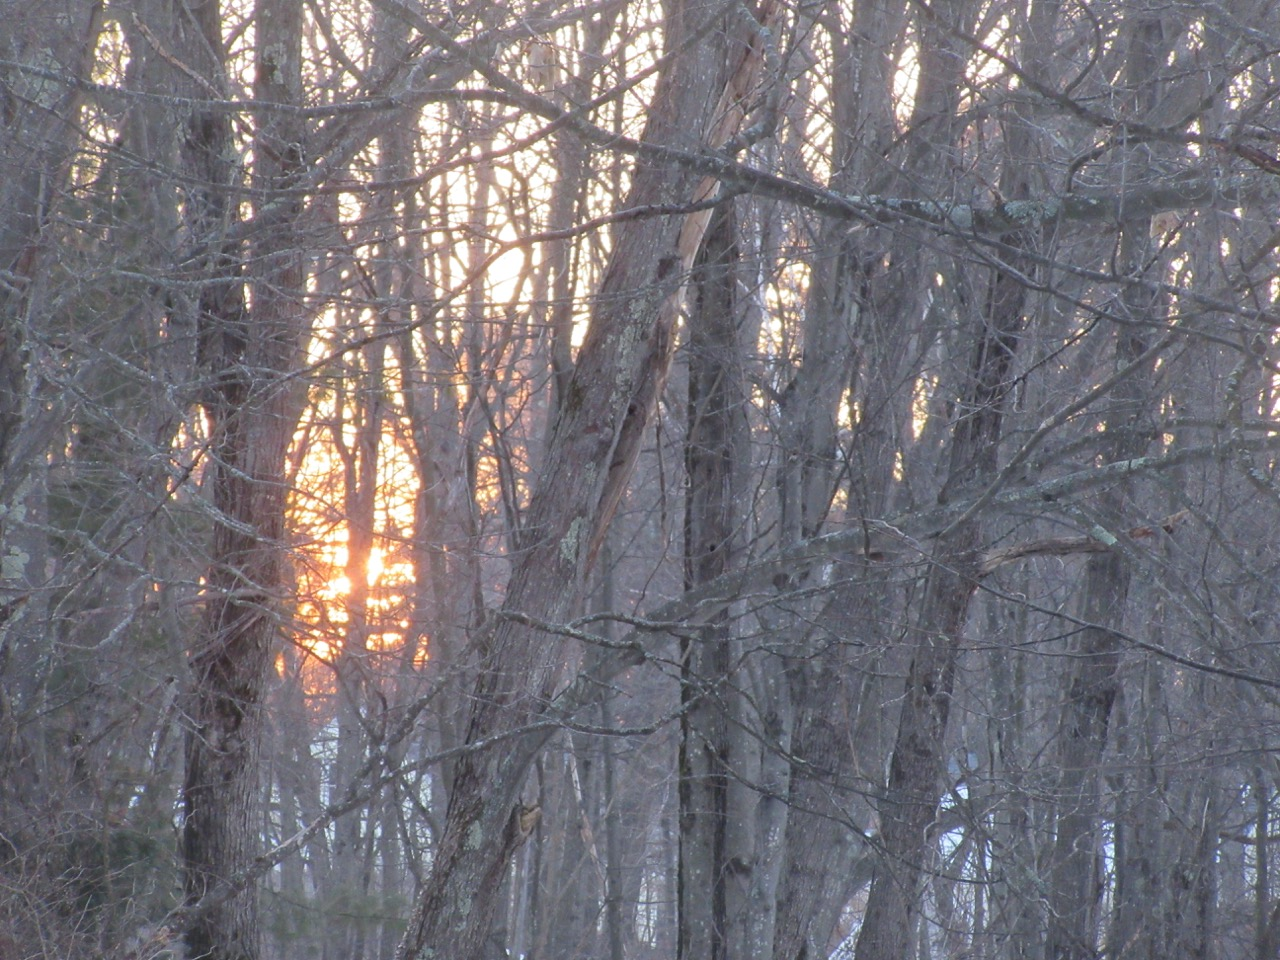 Sunrise in trees